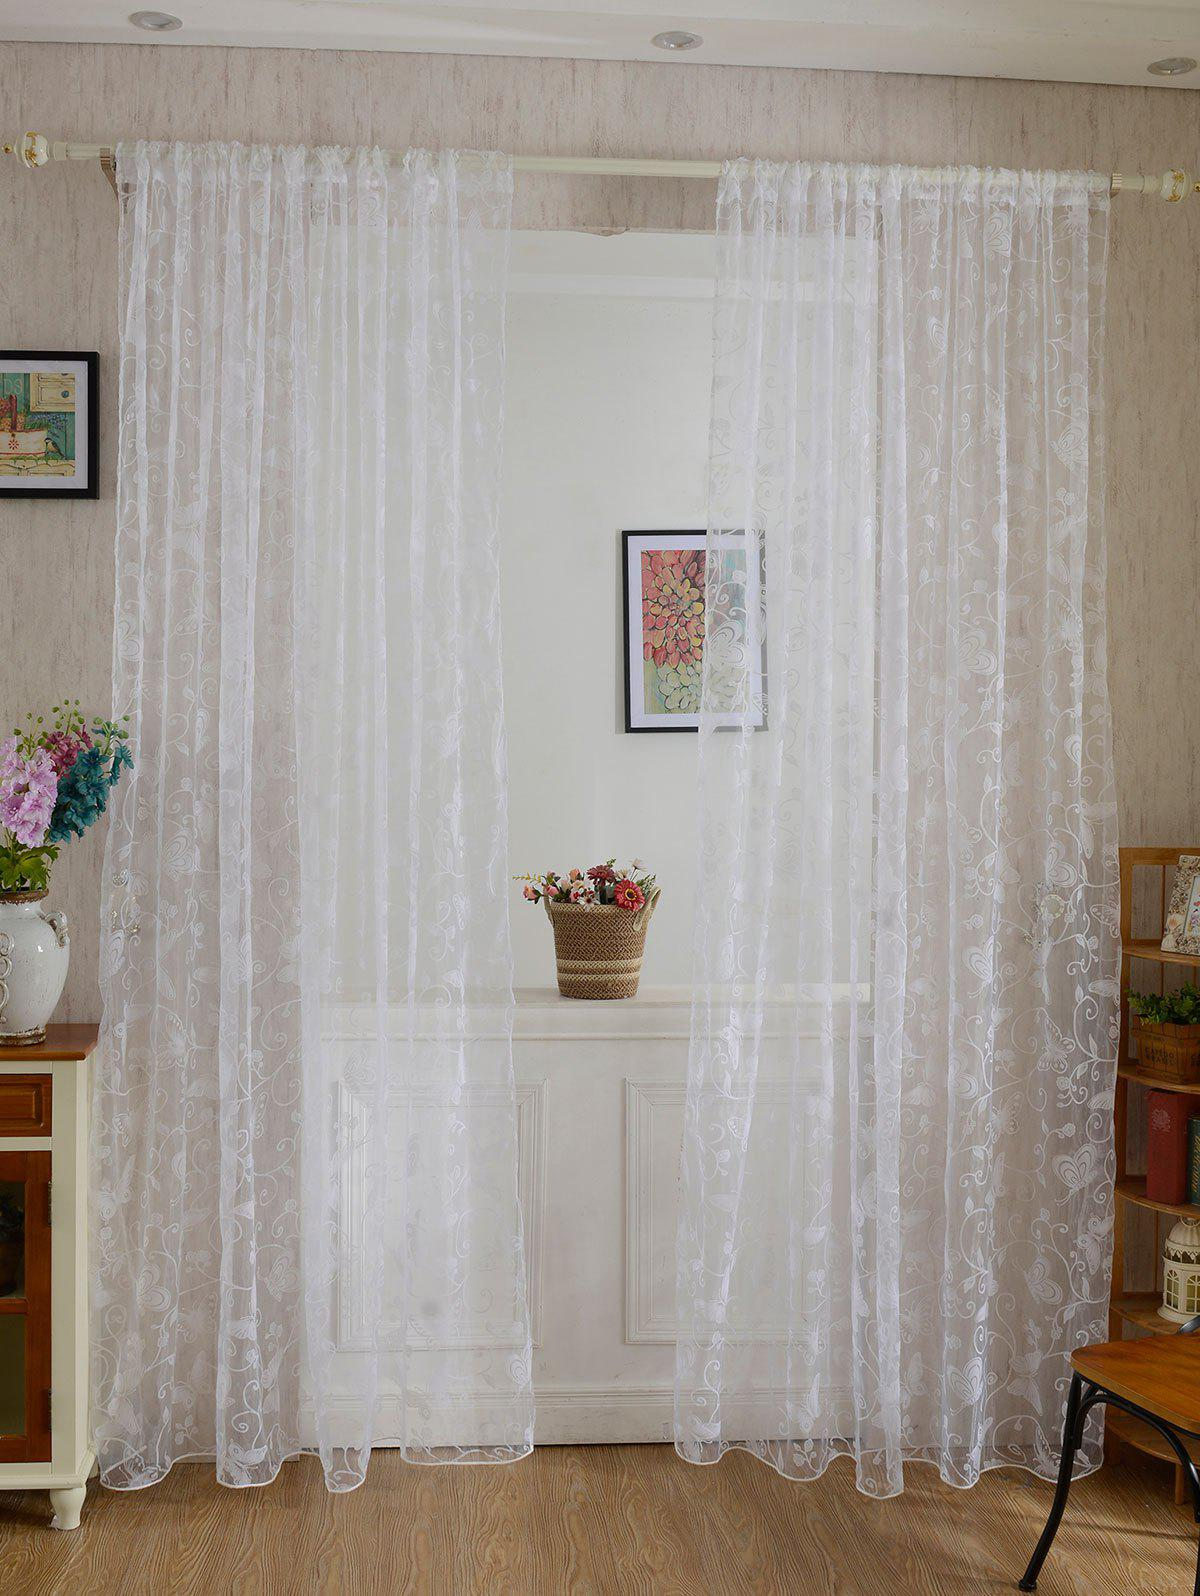 2Pcs/Set Butterflies Embroidery Window Sheer Tulle Curtain roman rose embroidery sheer screening tull curtain